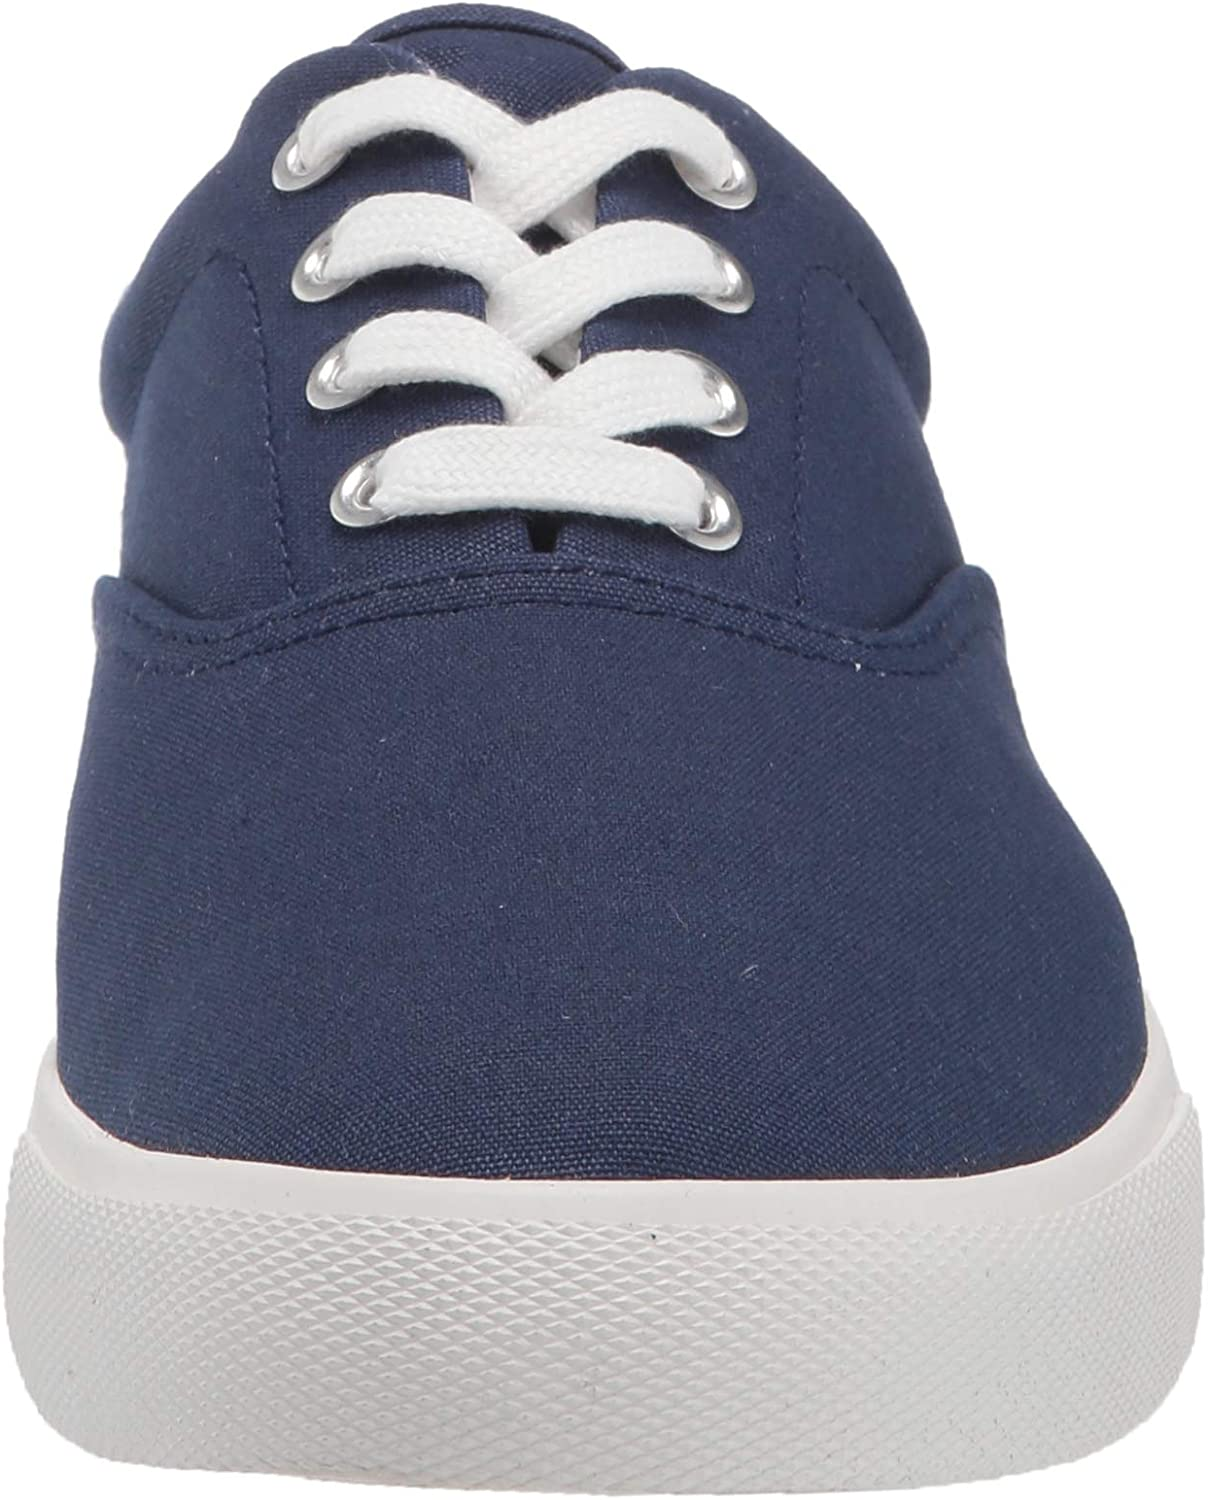 Essentials Men/'s Shoes Ronny Canvas Low Top Lace Up Fashion Sneakers